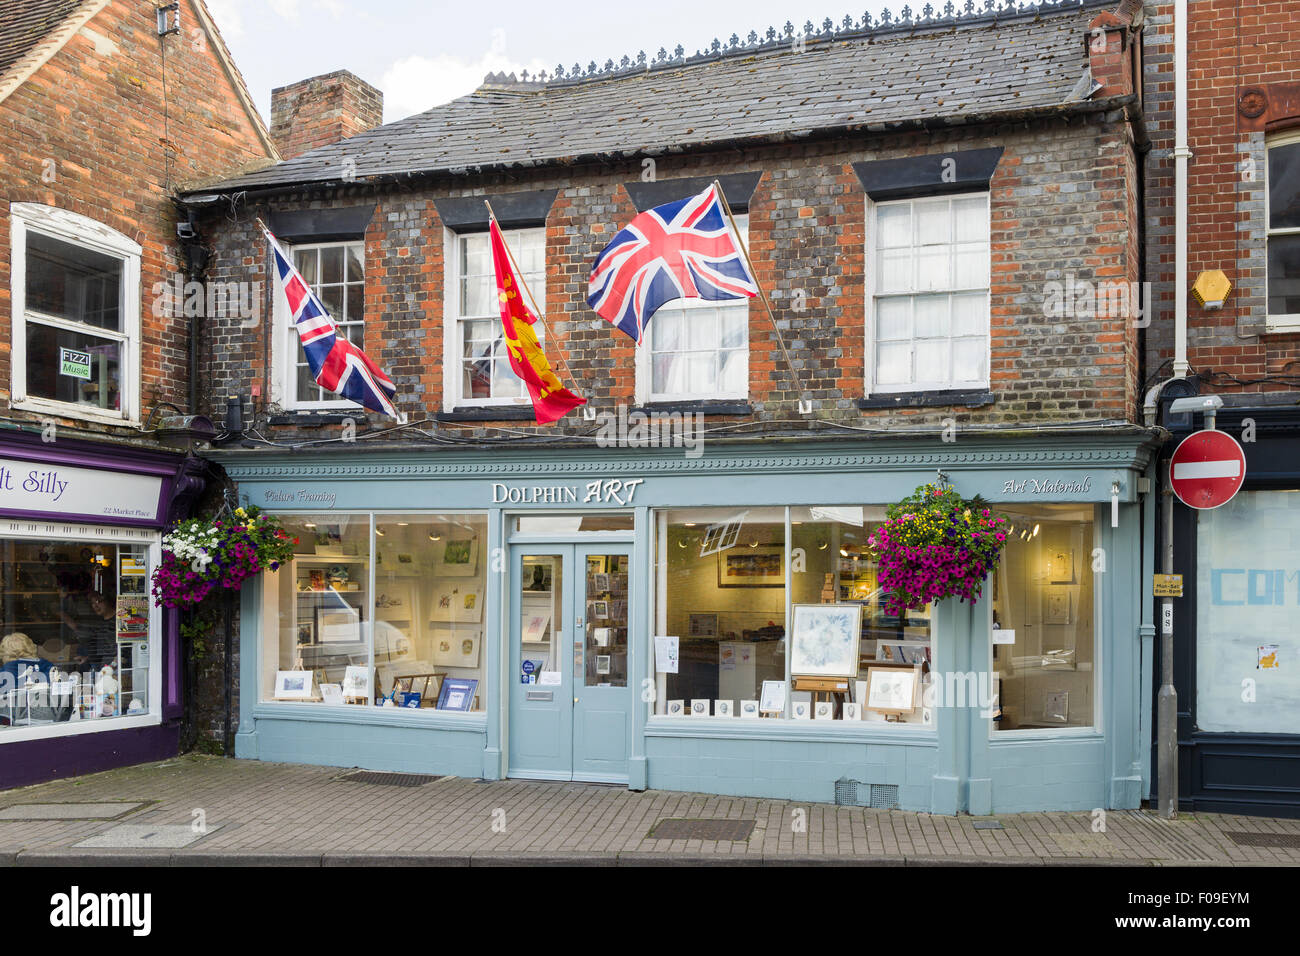 The Dolphin Gallery, Market Place, Wantage, Oxfordshire, UK. Stock Photo